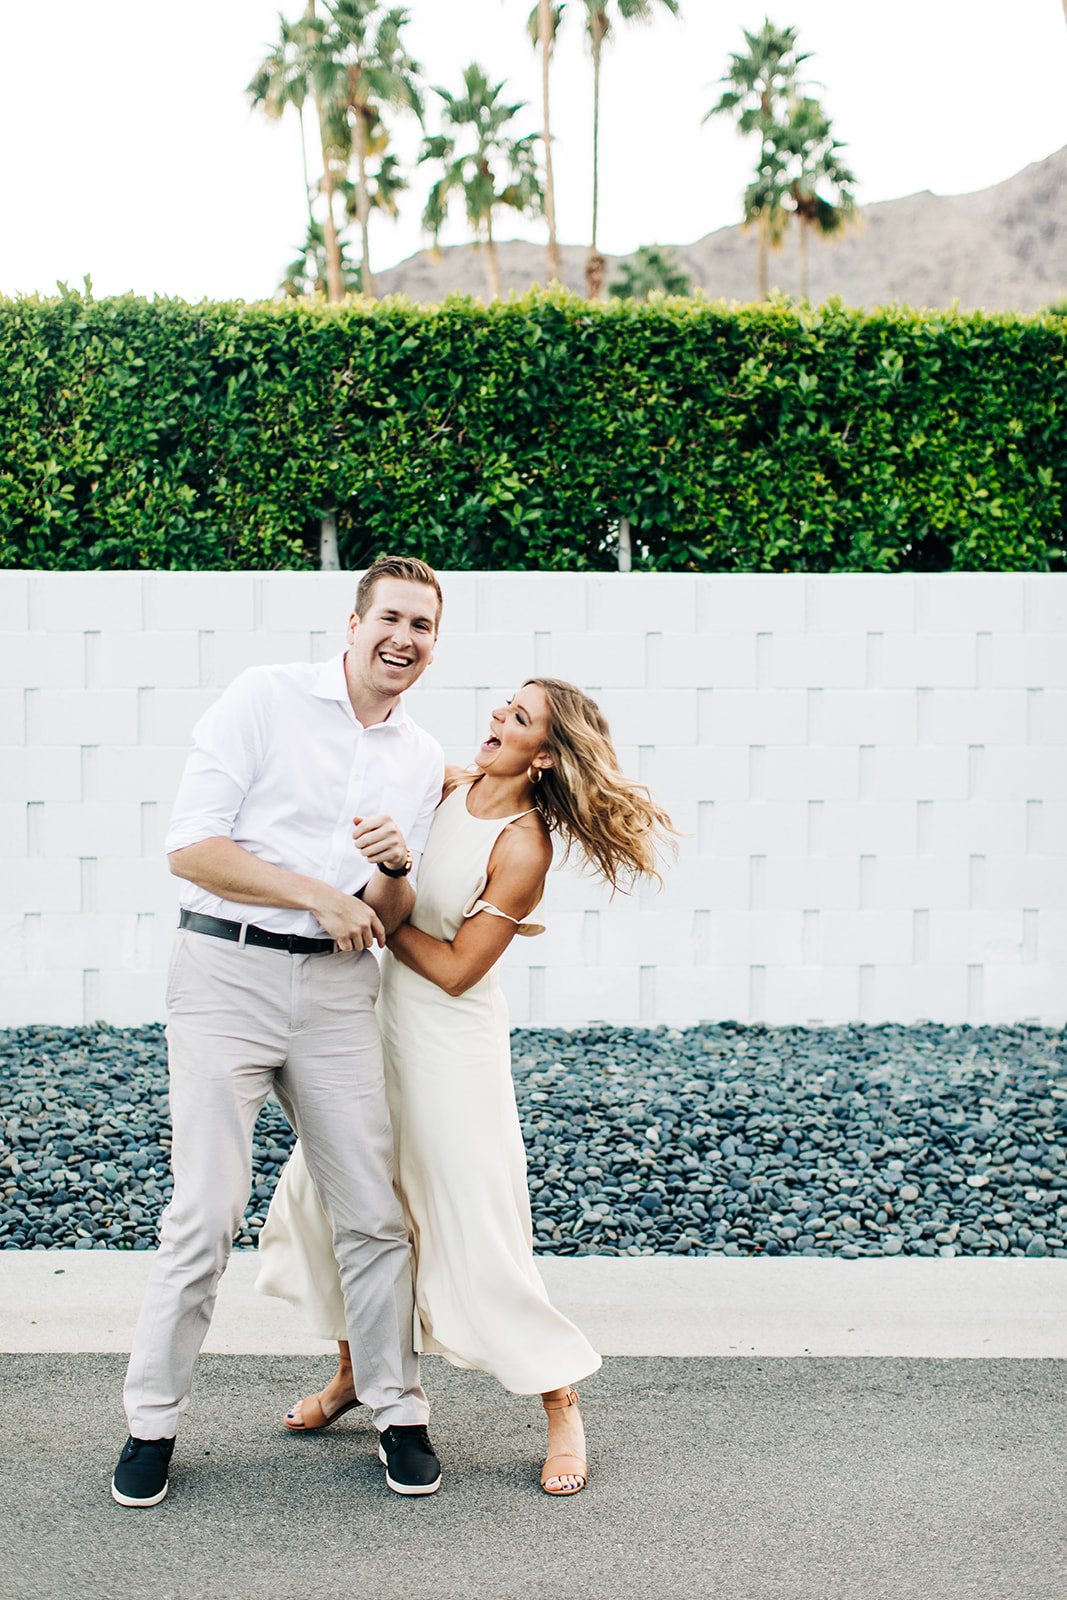 Paulina-Drew_Palm-Springs-Engagement-Photos_Clarisse-Rae_Southern-California-Wedding-Photographer-17